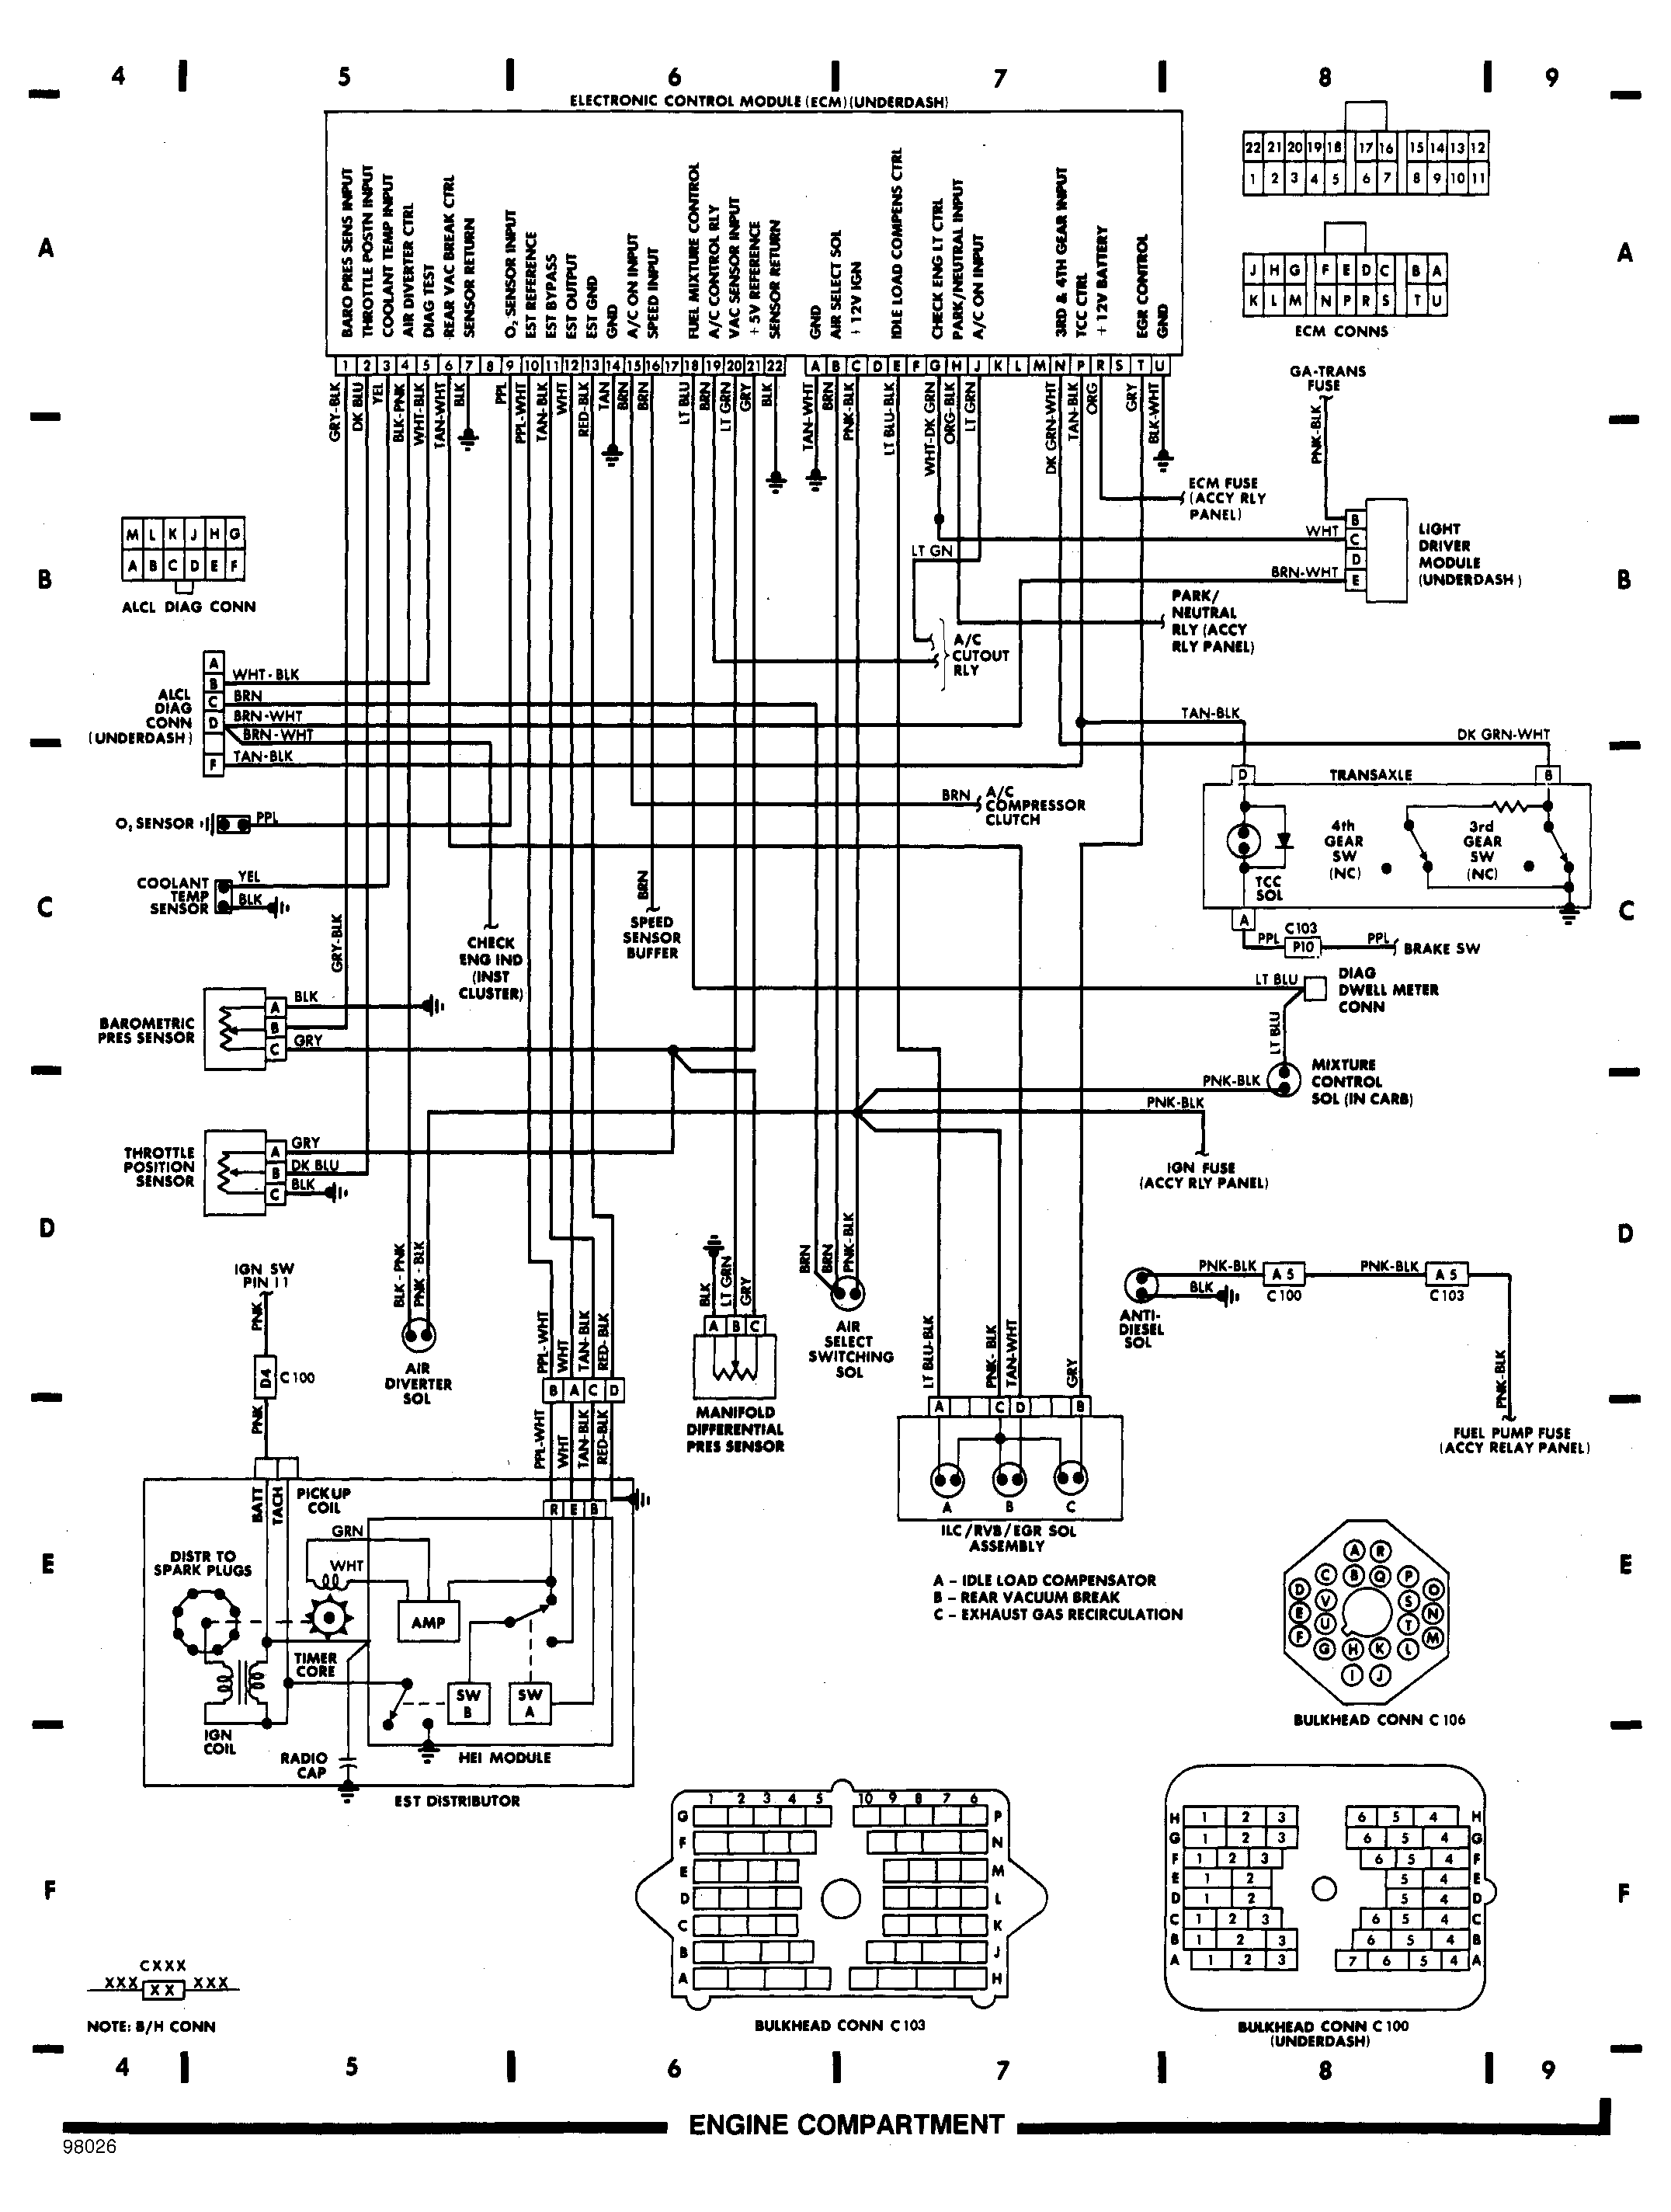 Wiring Diagram 1990 Cadillac Library Fender Roland Ready Strat Engine Compartment 2